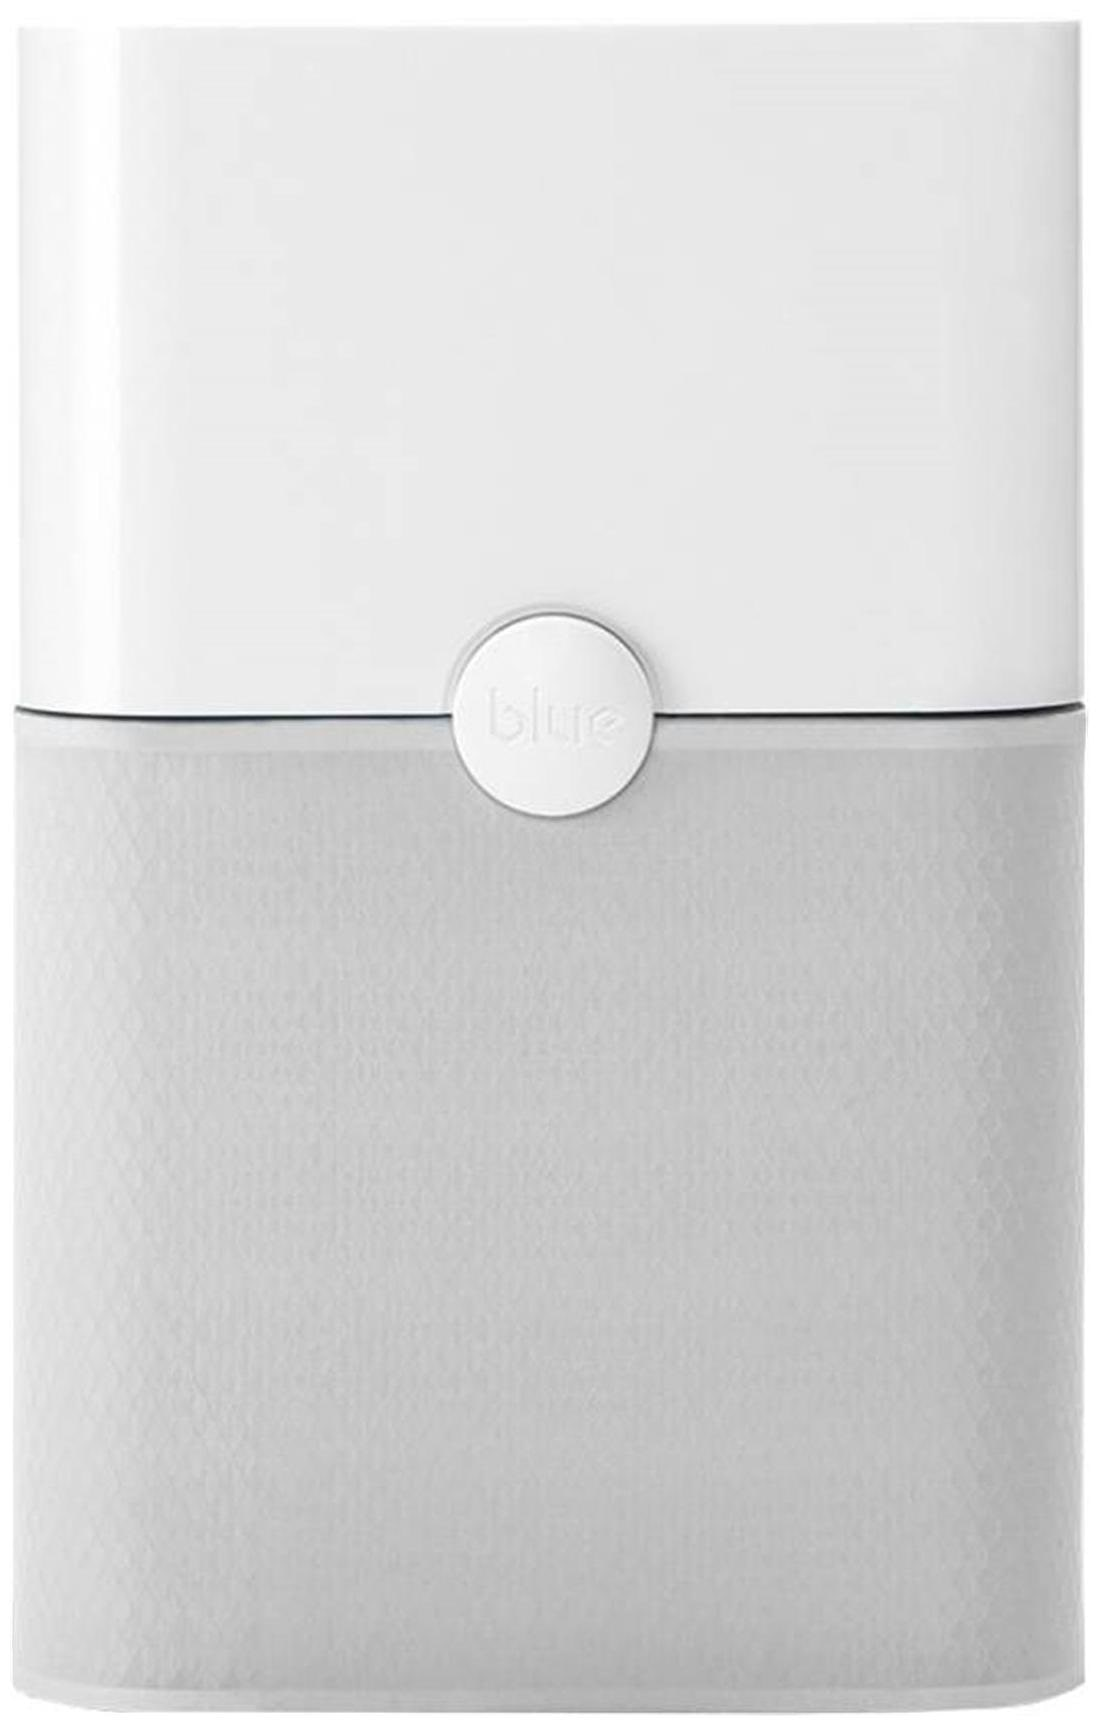 Blueair Pure 211 Floor Console Air Purifier Grey